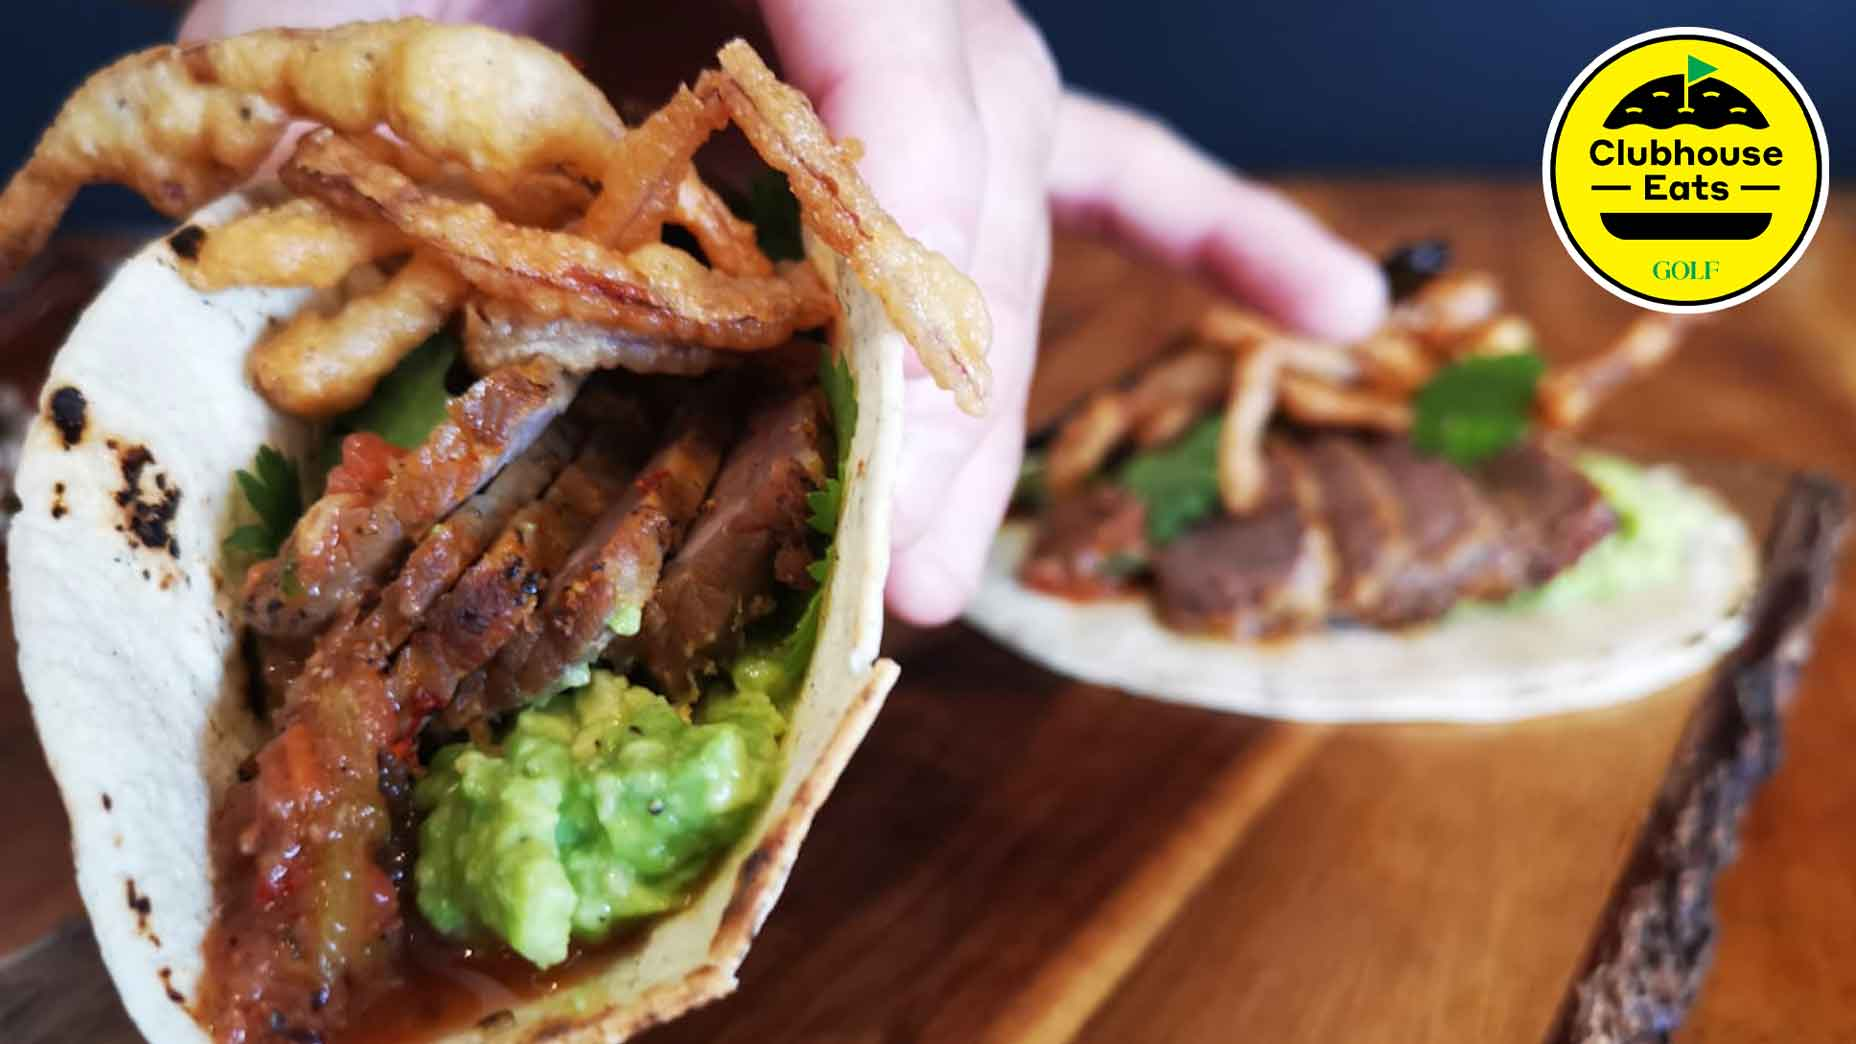 The 5 keys to making perfect tacos, according to a golf-club chef